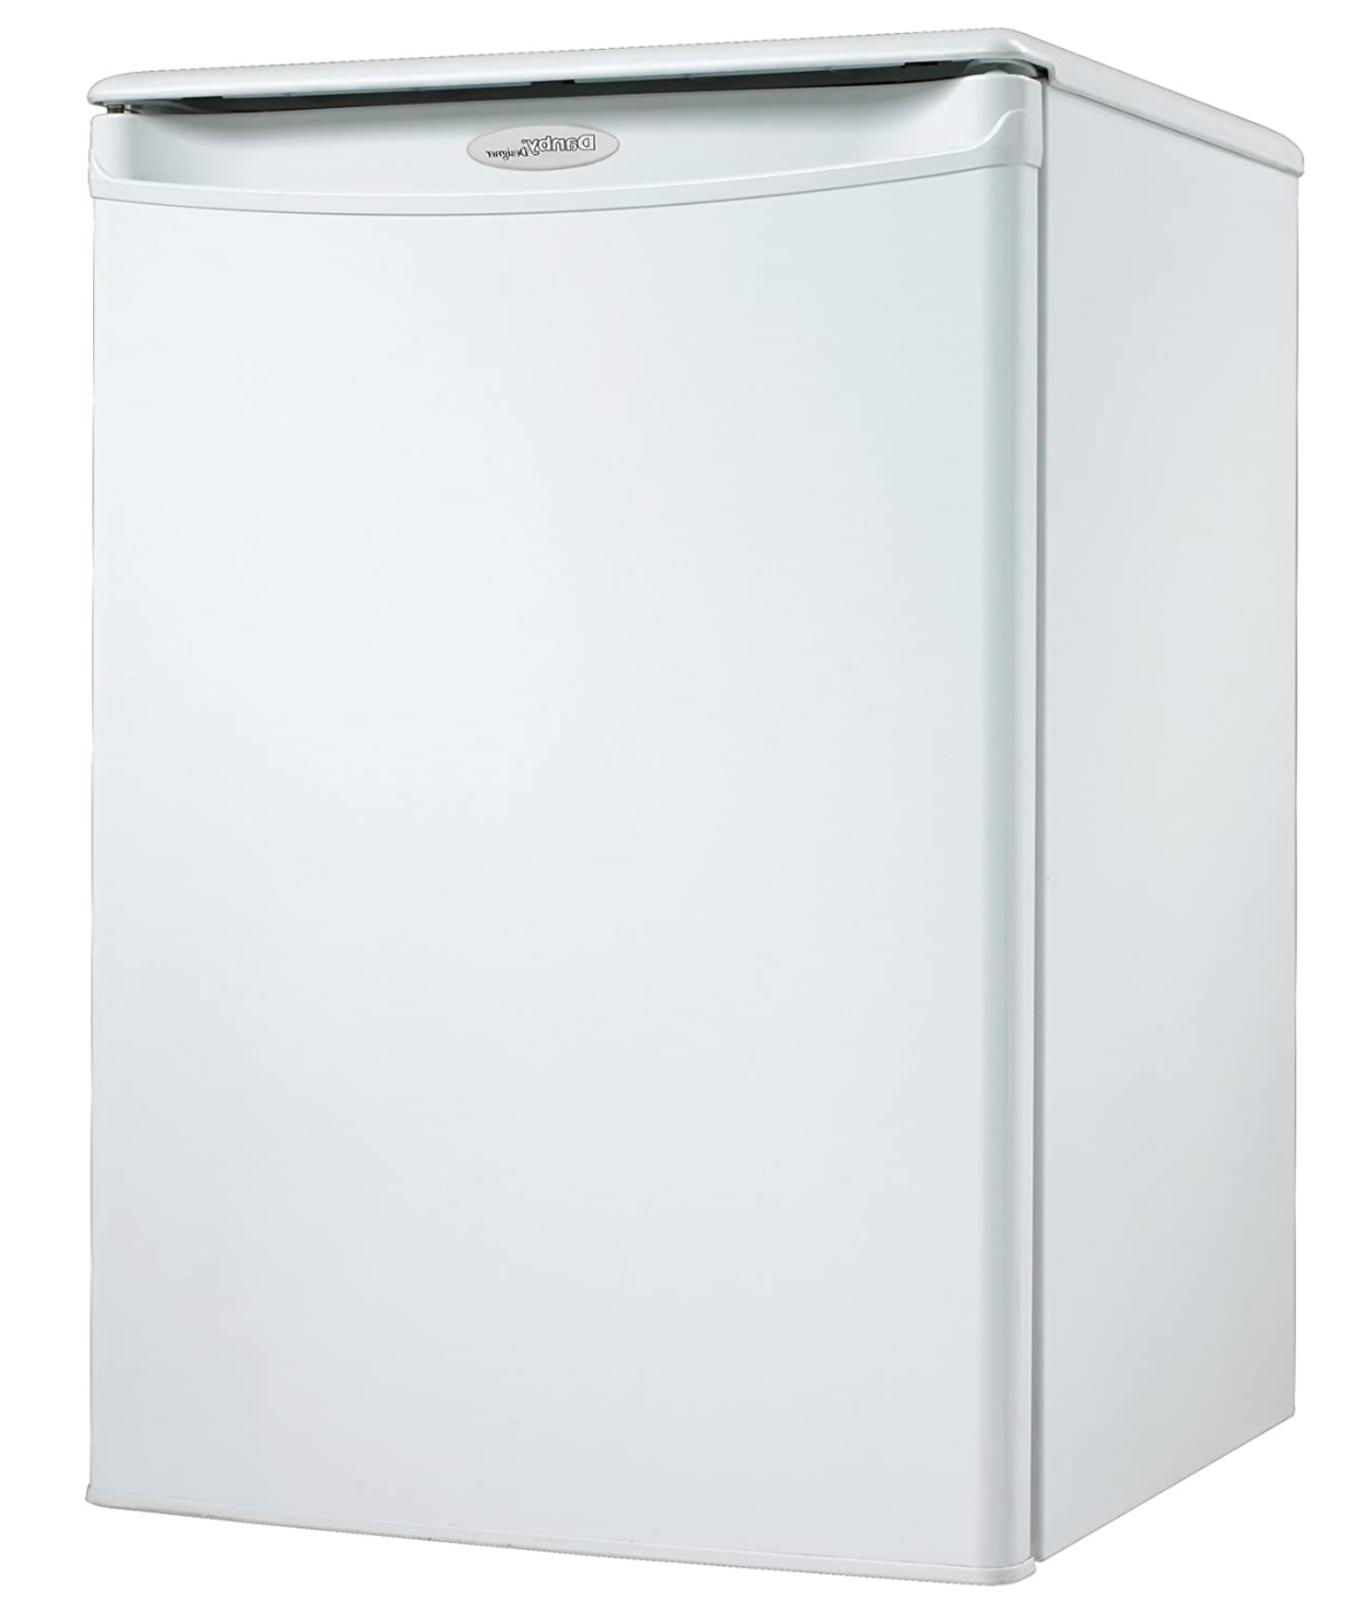 Danby - 2.6 Cu. Ft. Compact Refrigerator - White